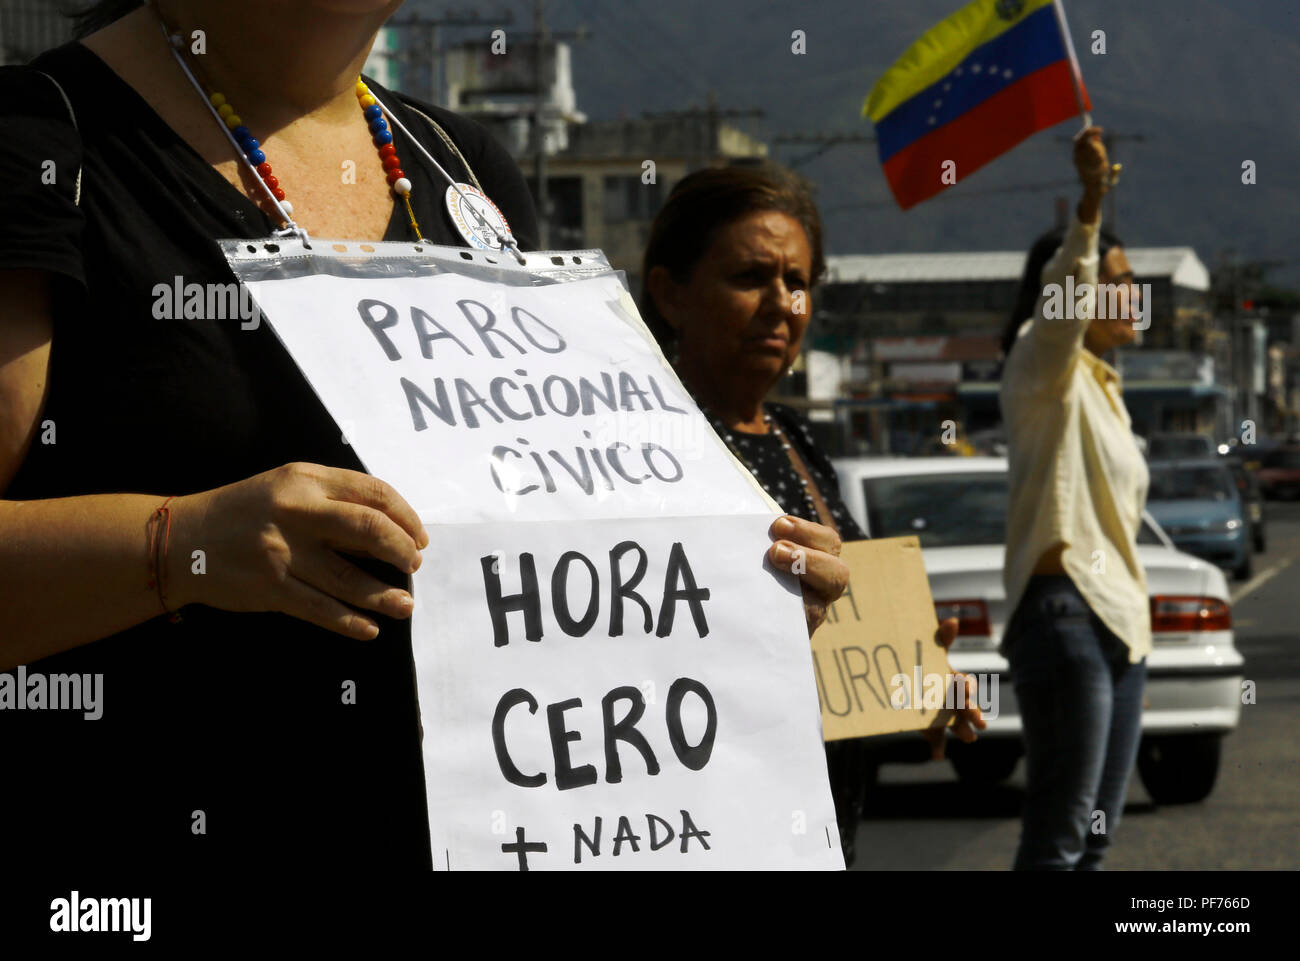 Valencia, Carabobo, Venezuela. 20th Aug, 2018. August 20, 2018. citizens protest against ''el paquetazo'', as it is called to the recent economic measures taken by Venezuelan President Nicolas Maduro. The poster says: National Civic Stop, zero hour. In Valencia, Carabobo state. Photo: Juan Carlos Hernandez Credit: Juan Carlos Hernandez/ZUMA Wire/Alamy Live News - Stock Image